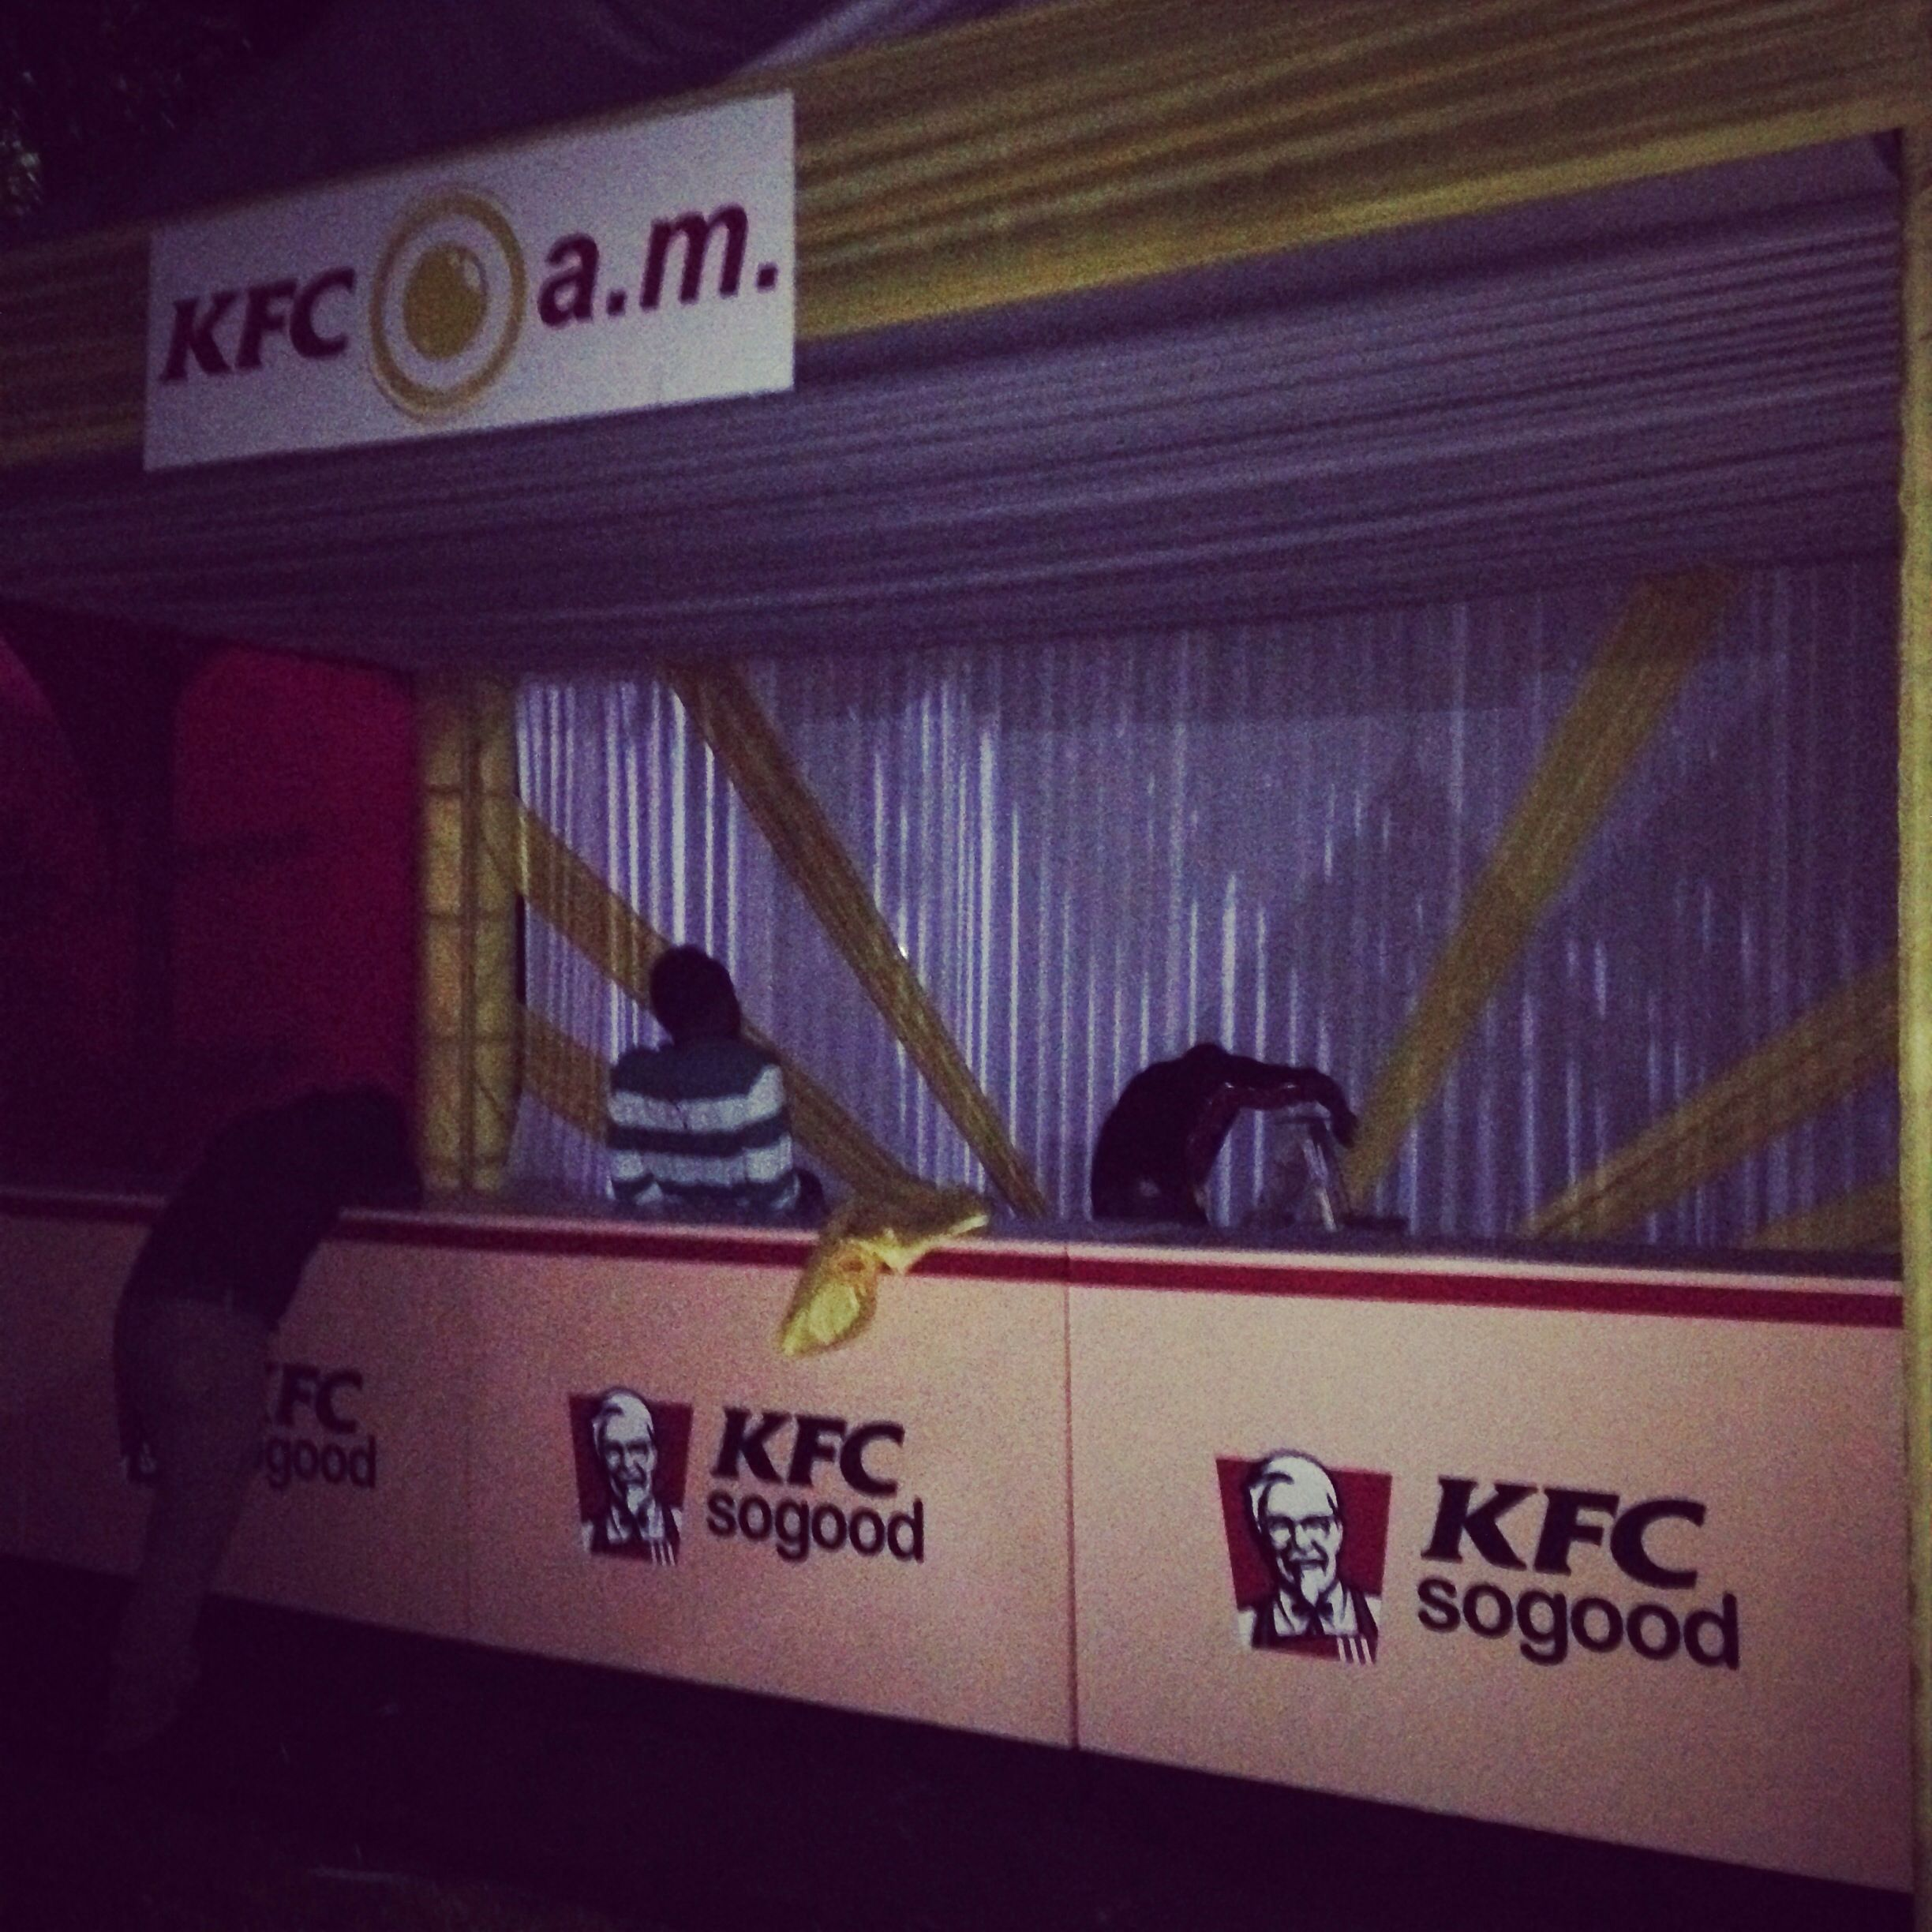 Built the KFC booth at sunrise party